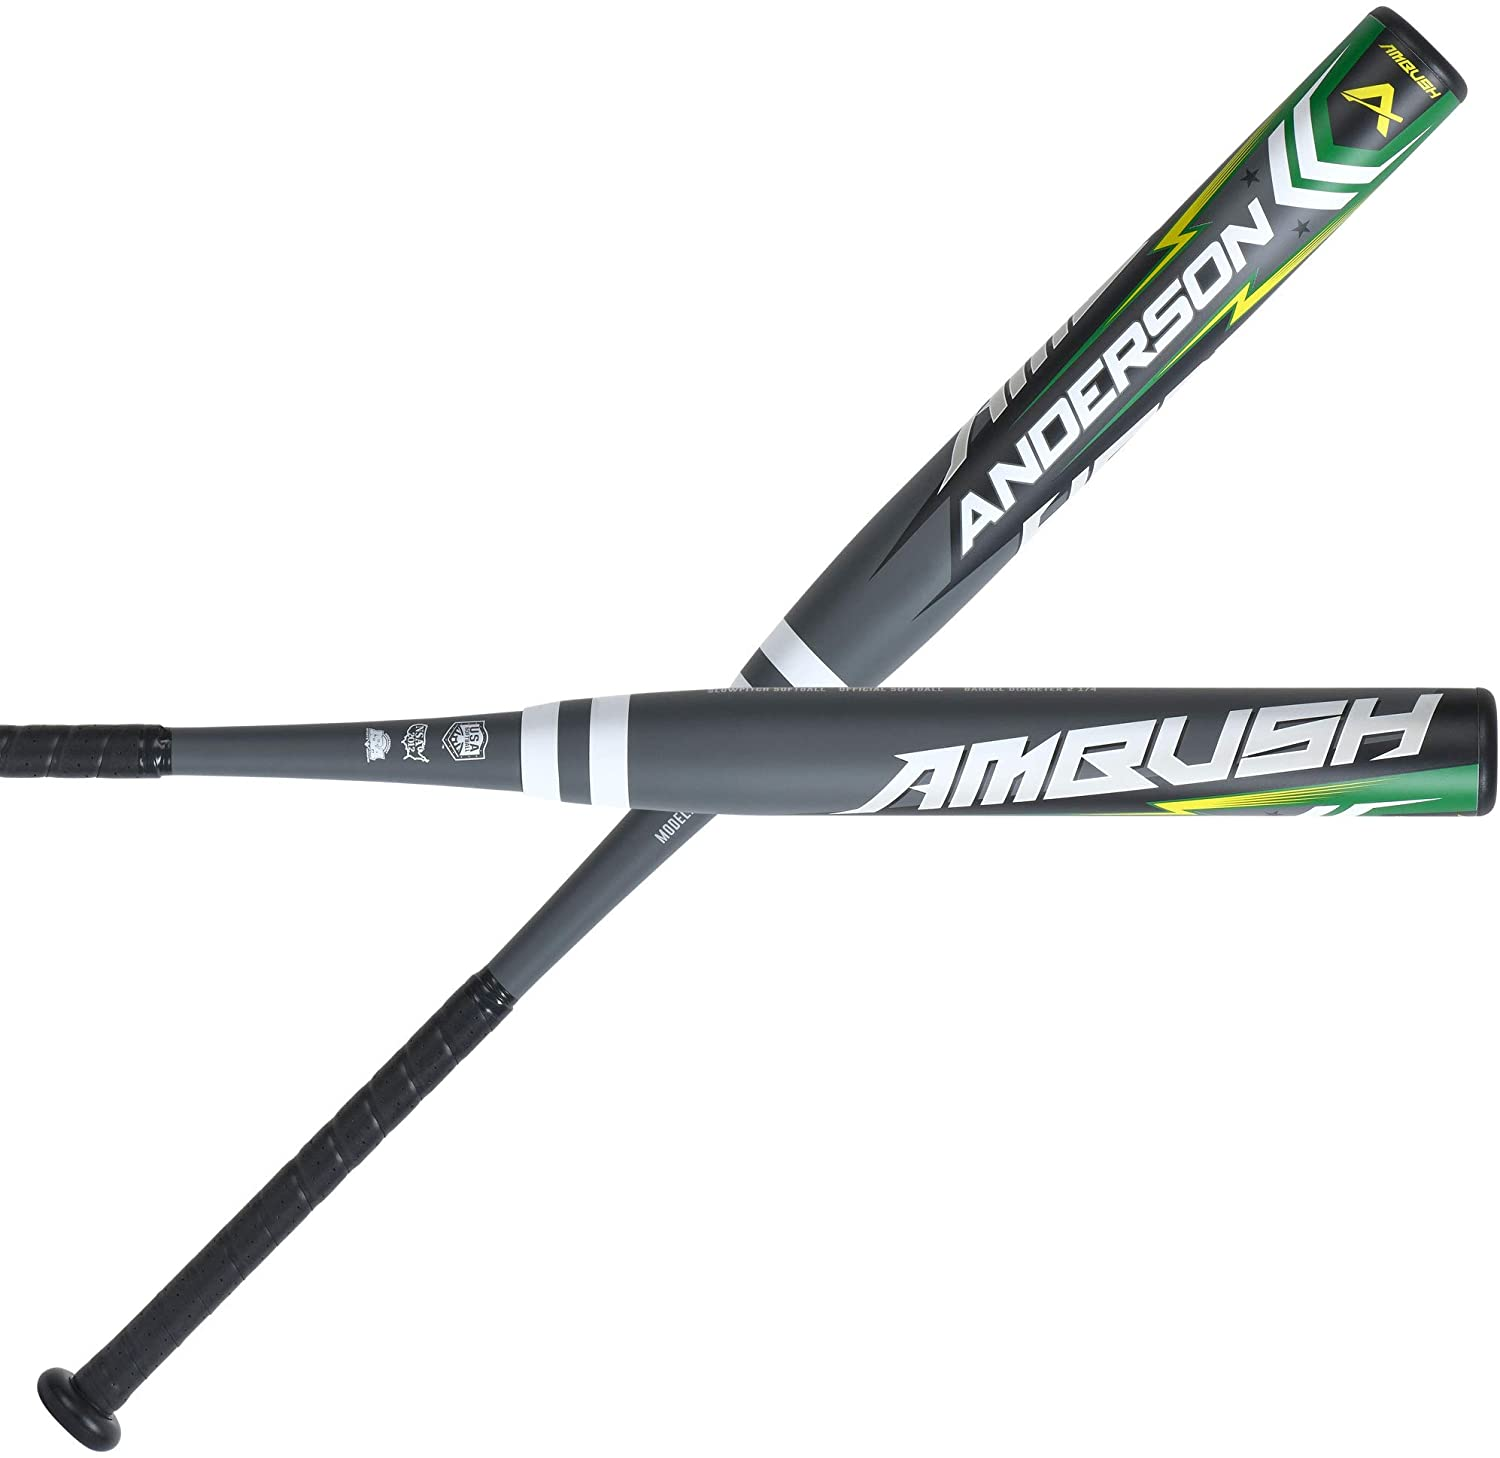 anderson-ambush-2021-composite-slowpitch-softball-bat-34-inch-26-oz 0110533-3426 Anderson  Anderson Rocketech has been dominating the double wall alloy slowpitch market.